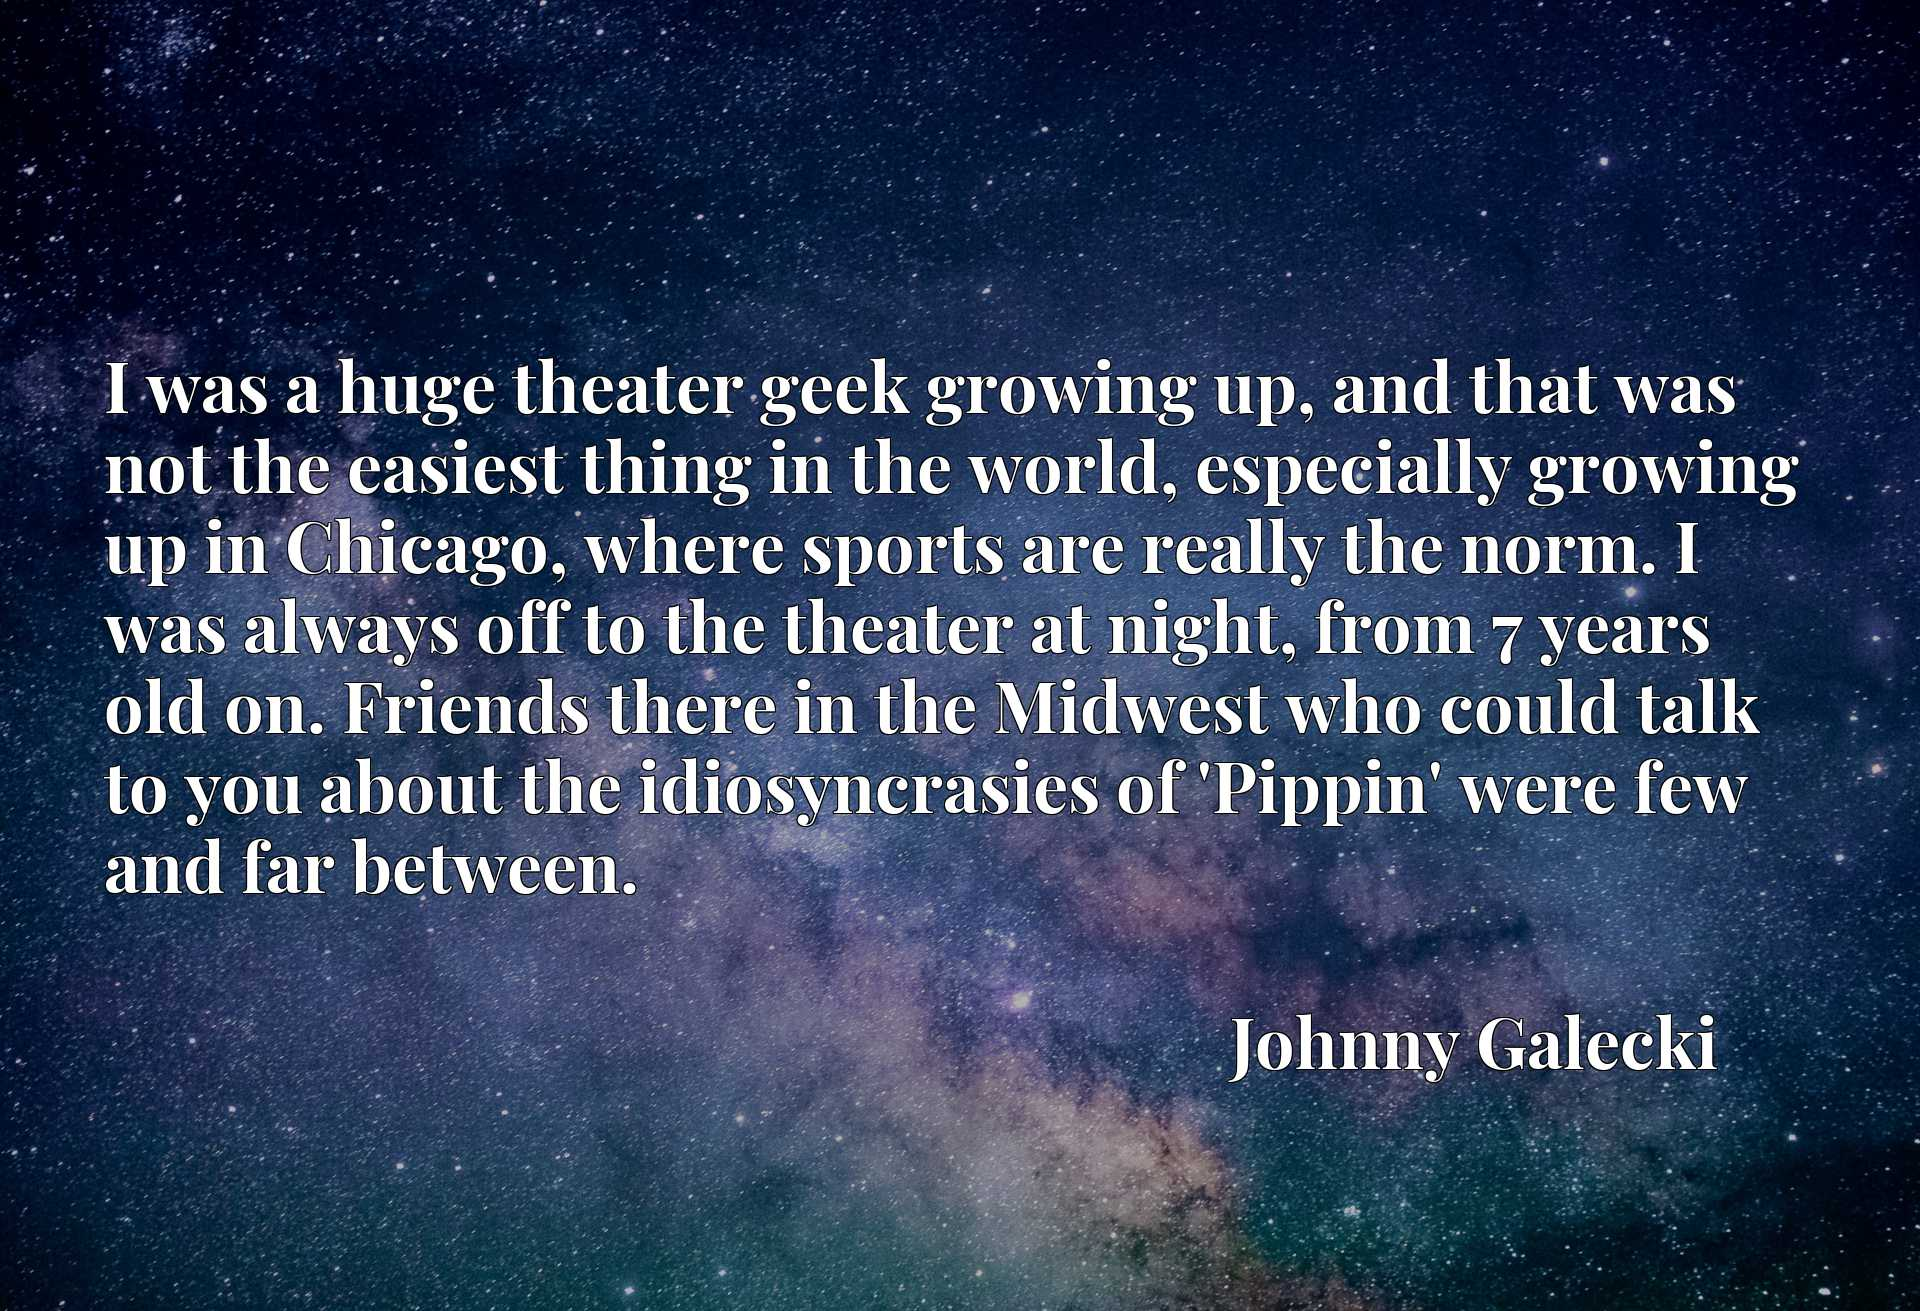 I was a huge theater geek growing up, and that was not the easiest thing in the world, especially growing up in Chicago, where sports are really the norm. I was always off to the theater at night, from 7 years old on. Friends there in the Midwest who could talk to you about the idiosyncrasies of 'Pippin' were few and far between.